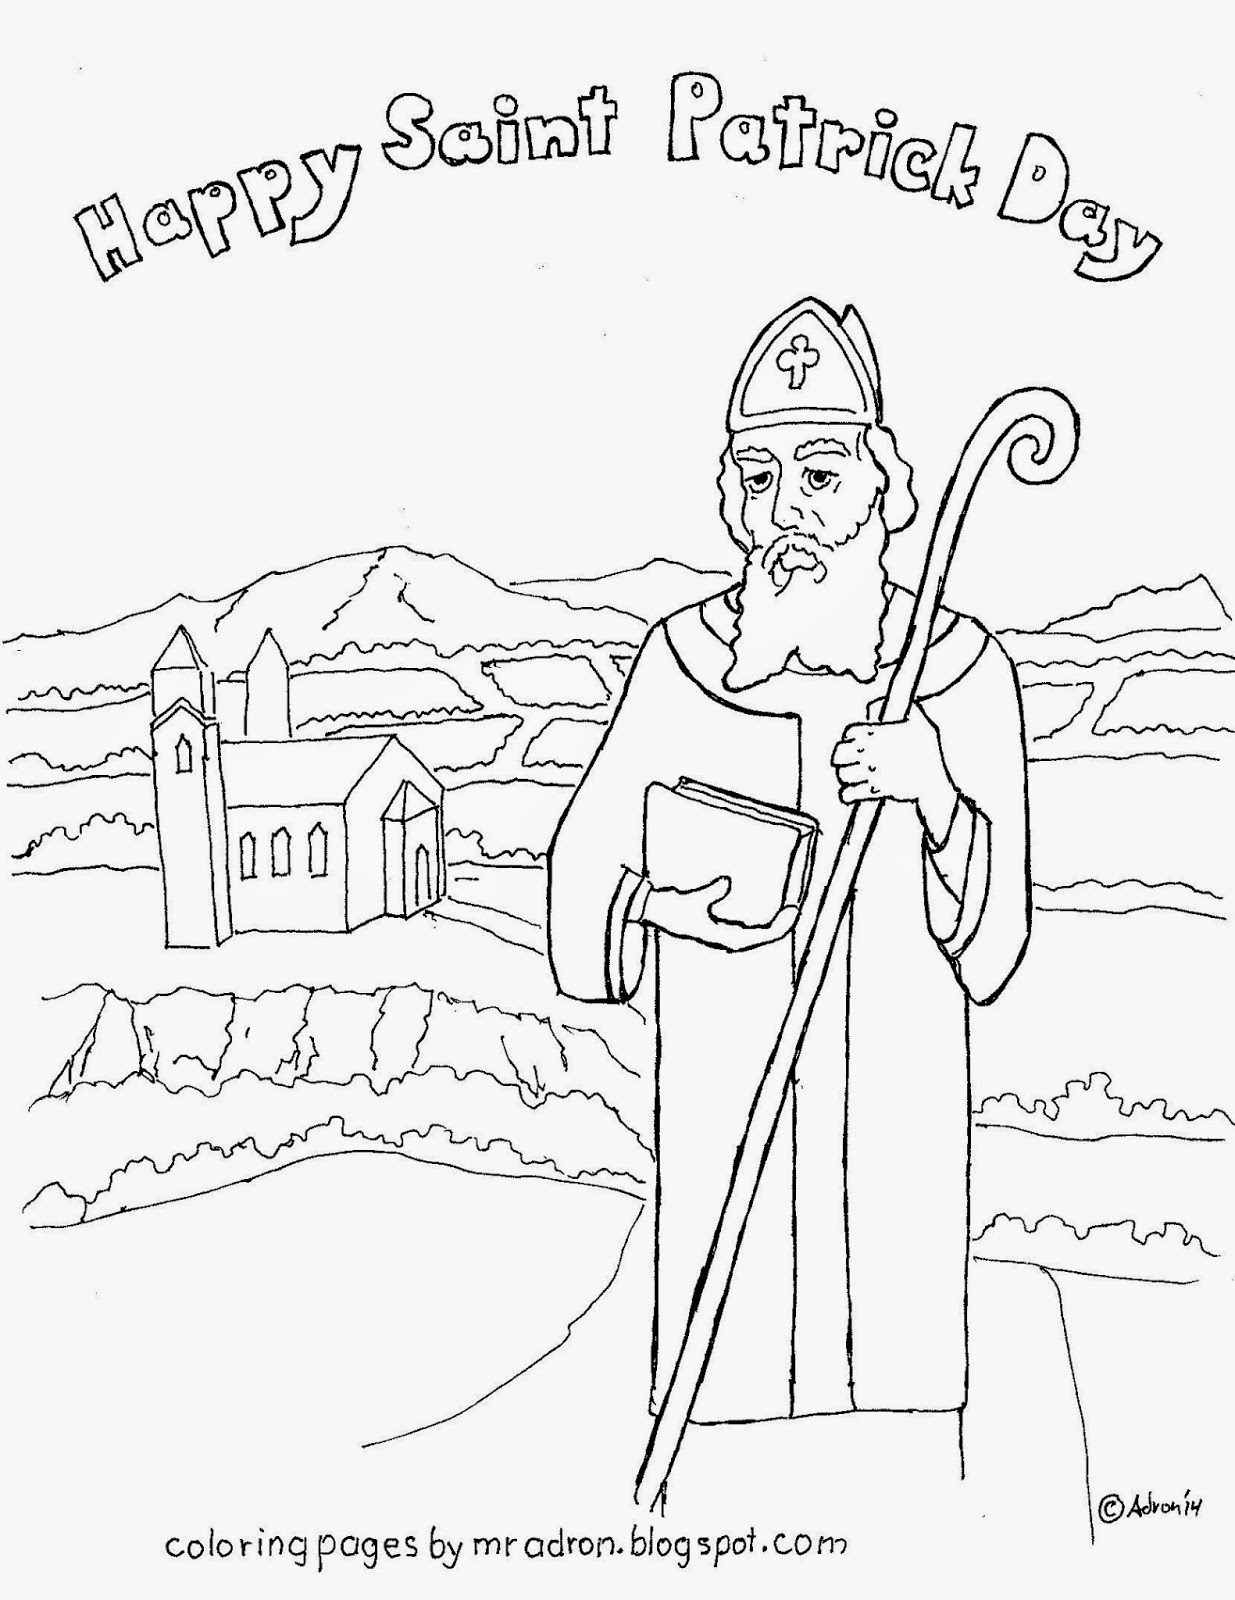 An illustration of St Patrick to print and color.